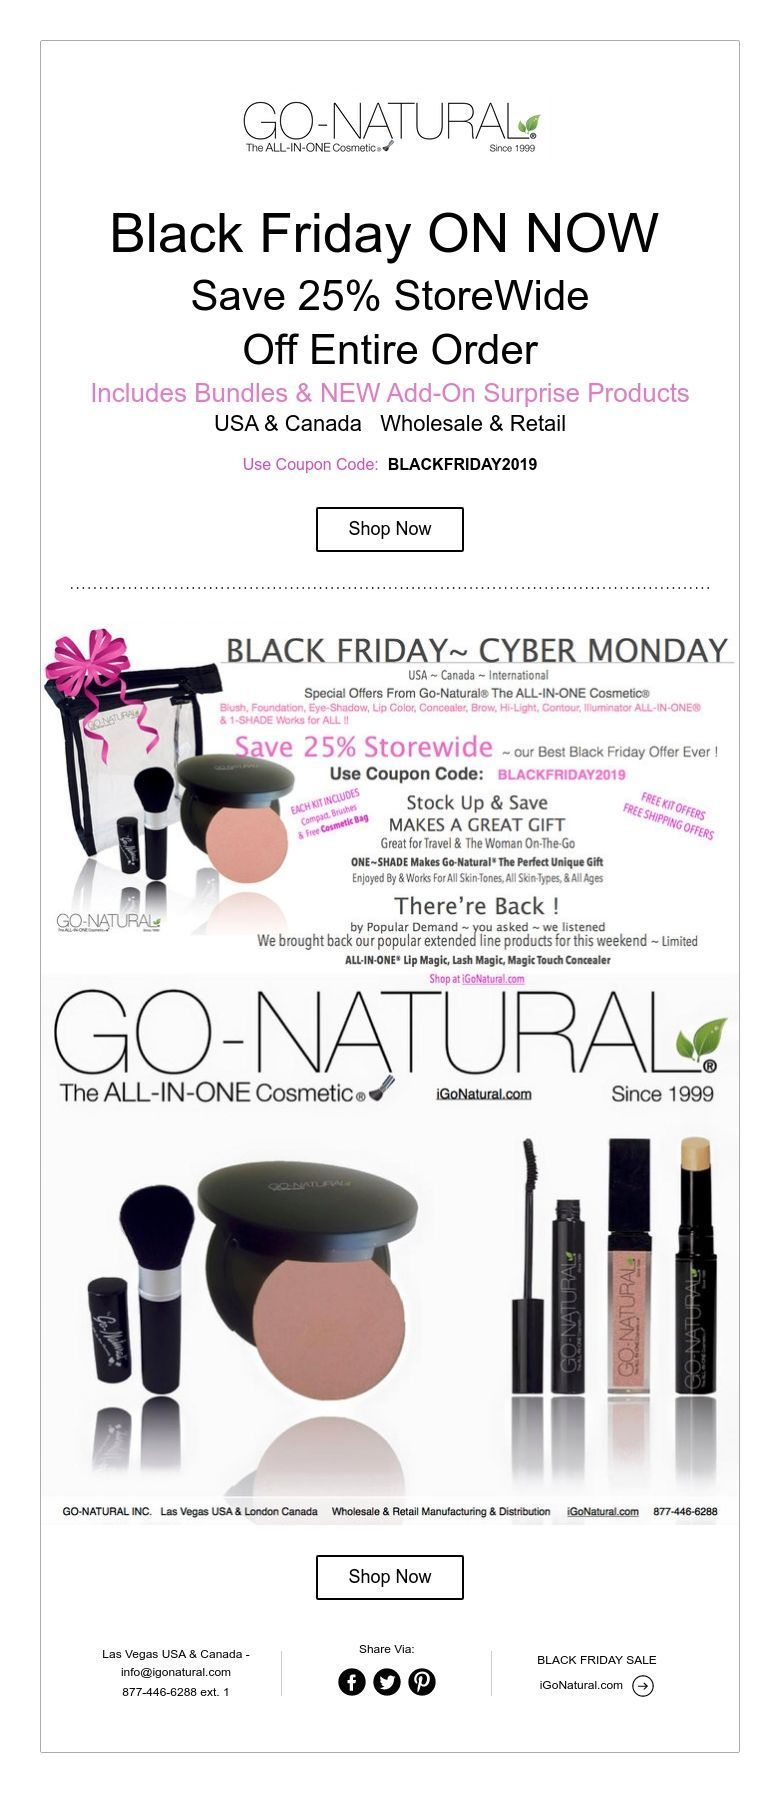 Black Friday ON NOW Save 25 StoreWide Off Entire Order